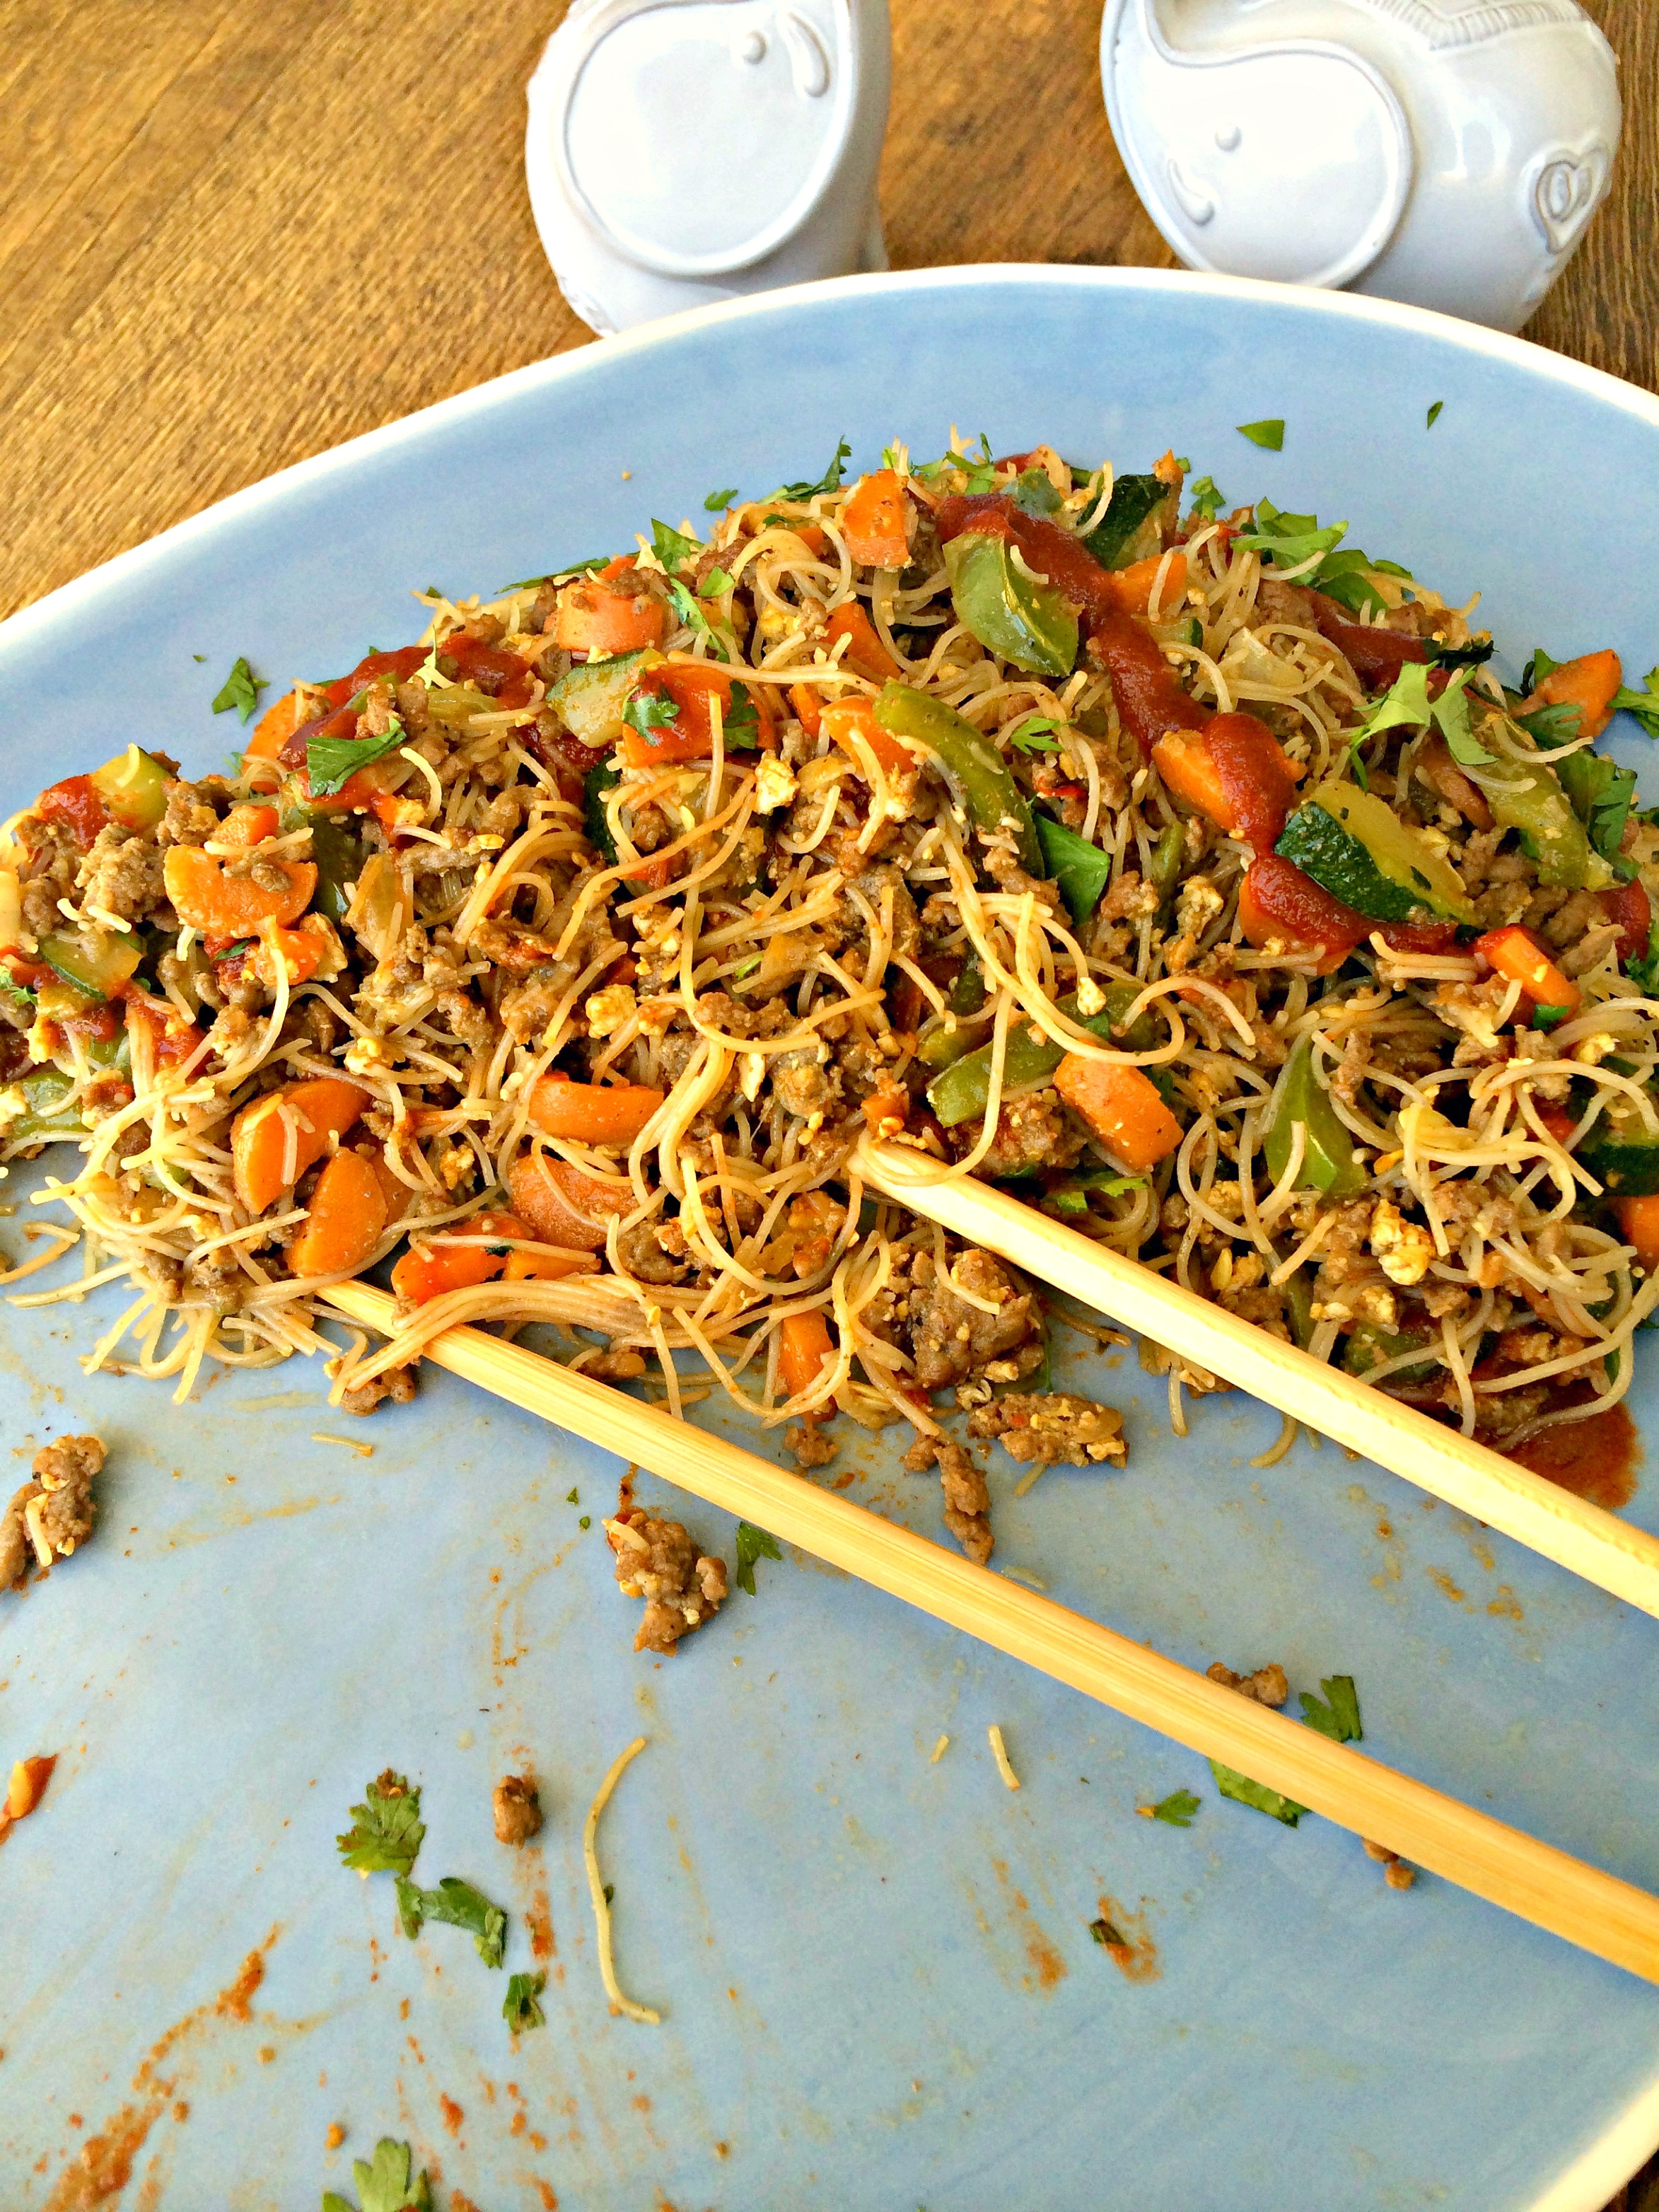 vermicelli rice how to cook